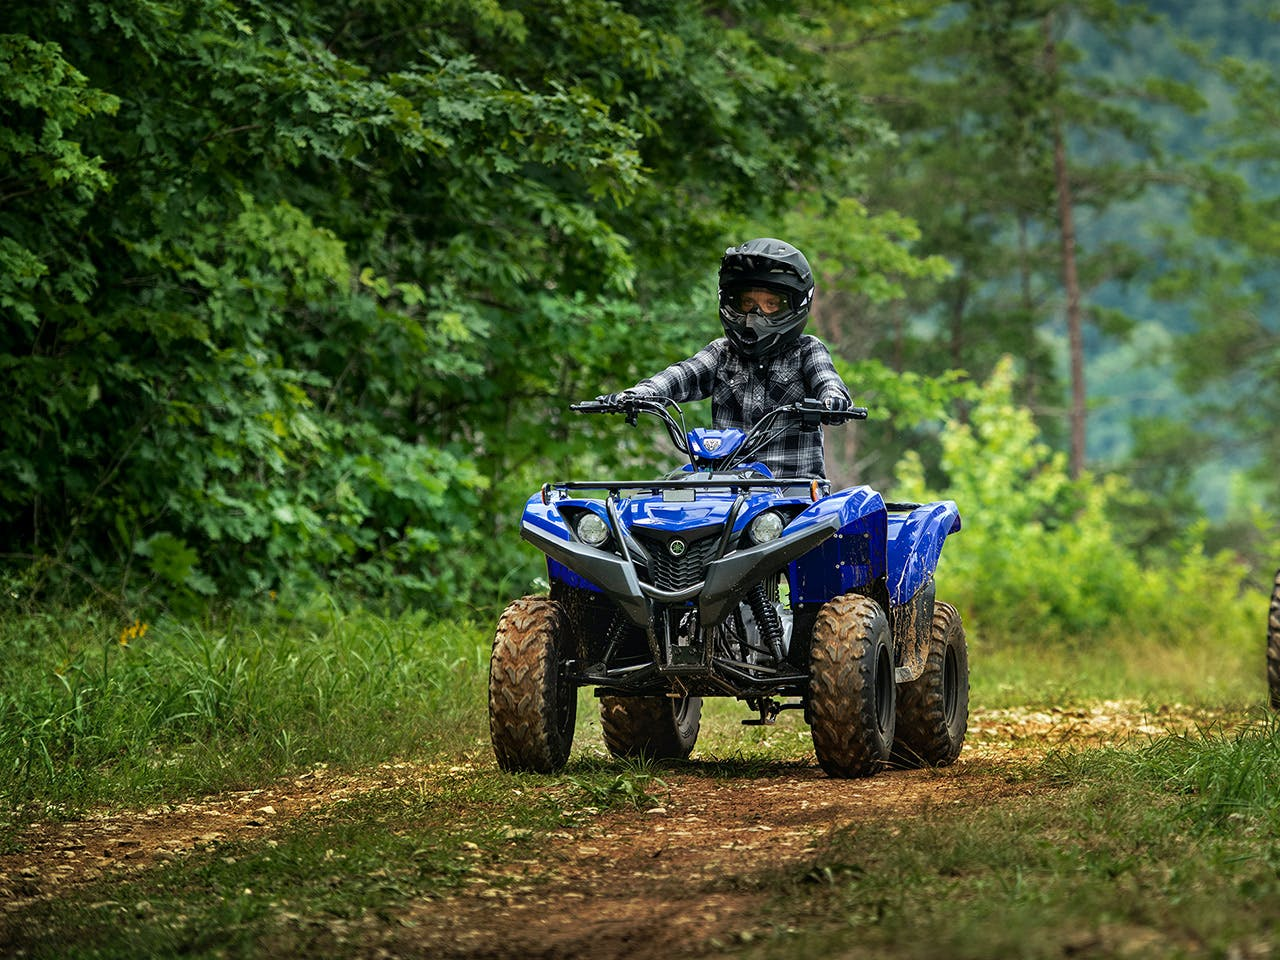 Yamaha Grizzly 90 in Steel Blue colour, being ridden off-track